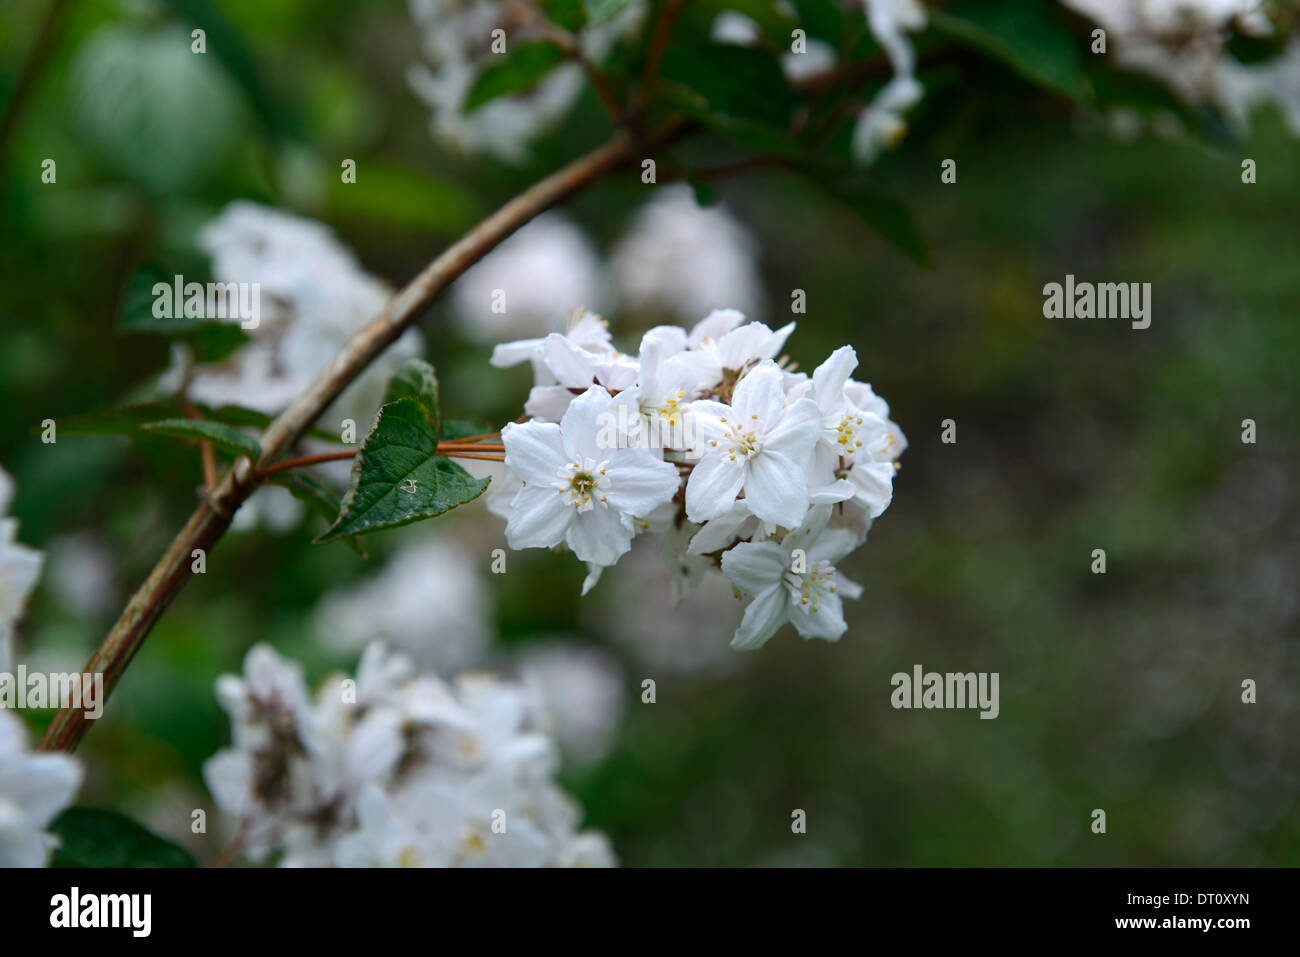 deutzia elegantissima stockfotos deutzia elegantissima bilder alamy. Black Bedroom Furniture Sets. Home Design Ideas